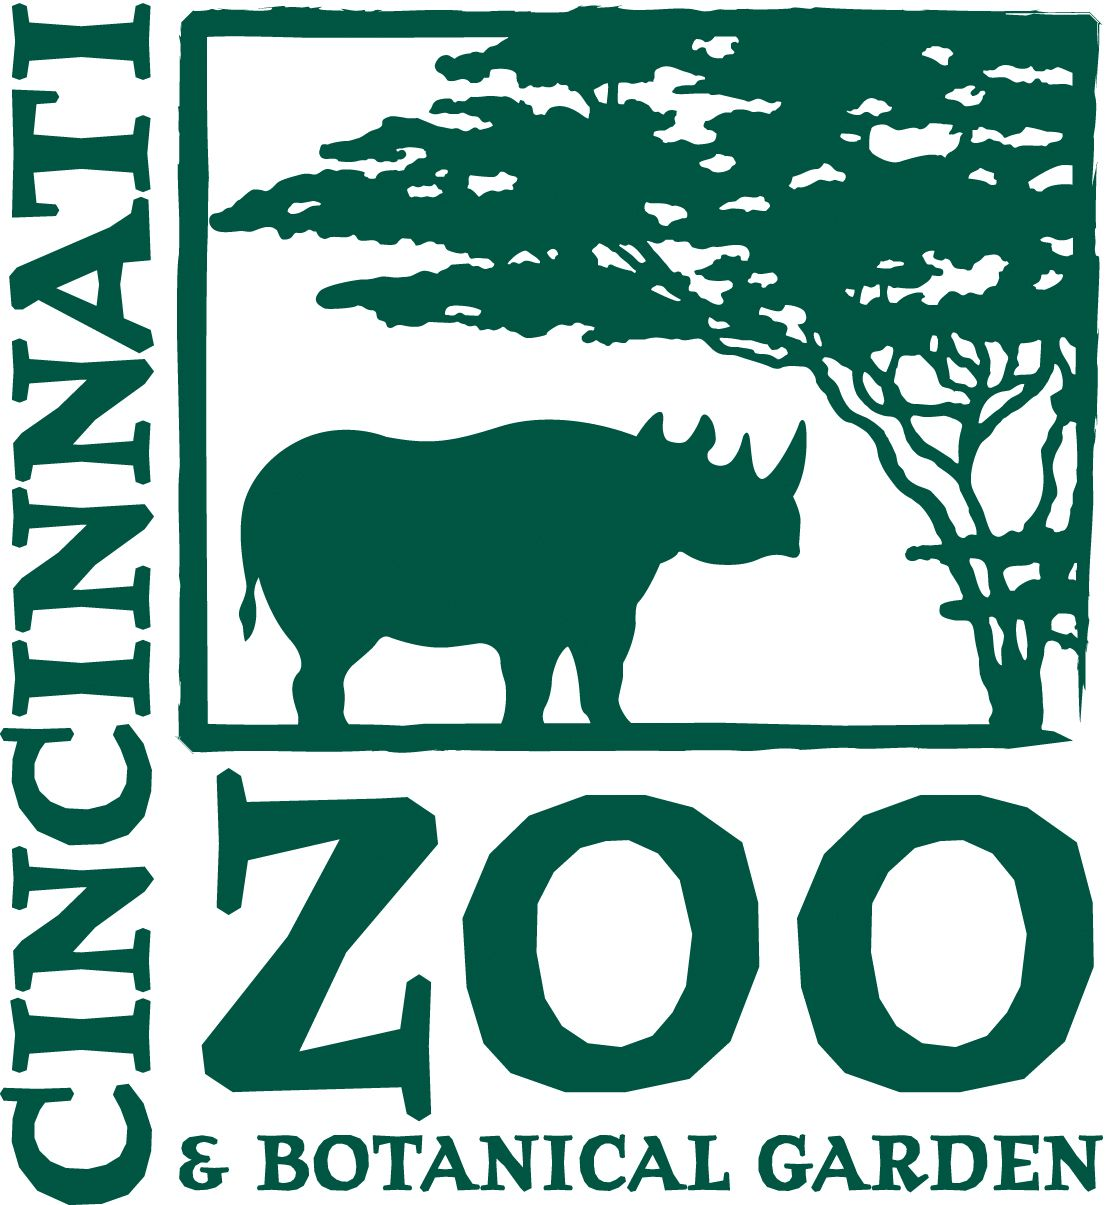 I love the zoo, especially around Thanksgiving and